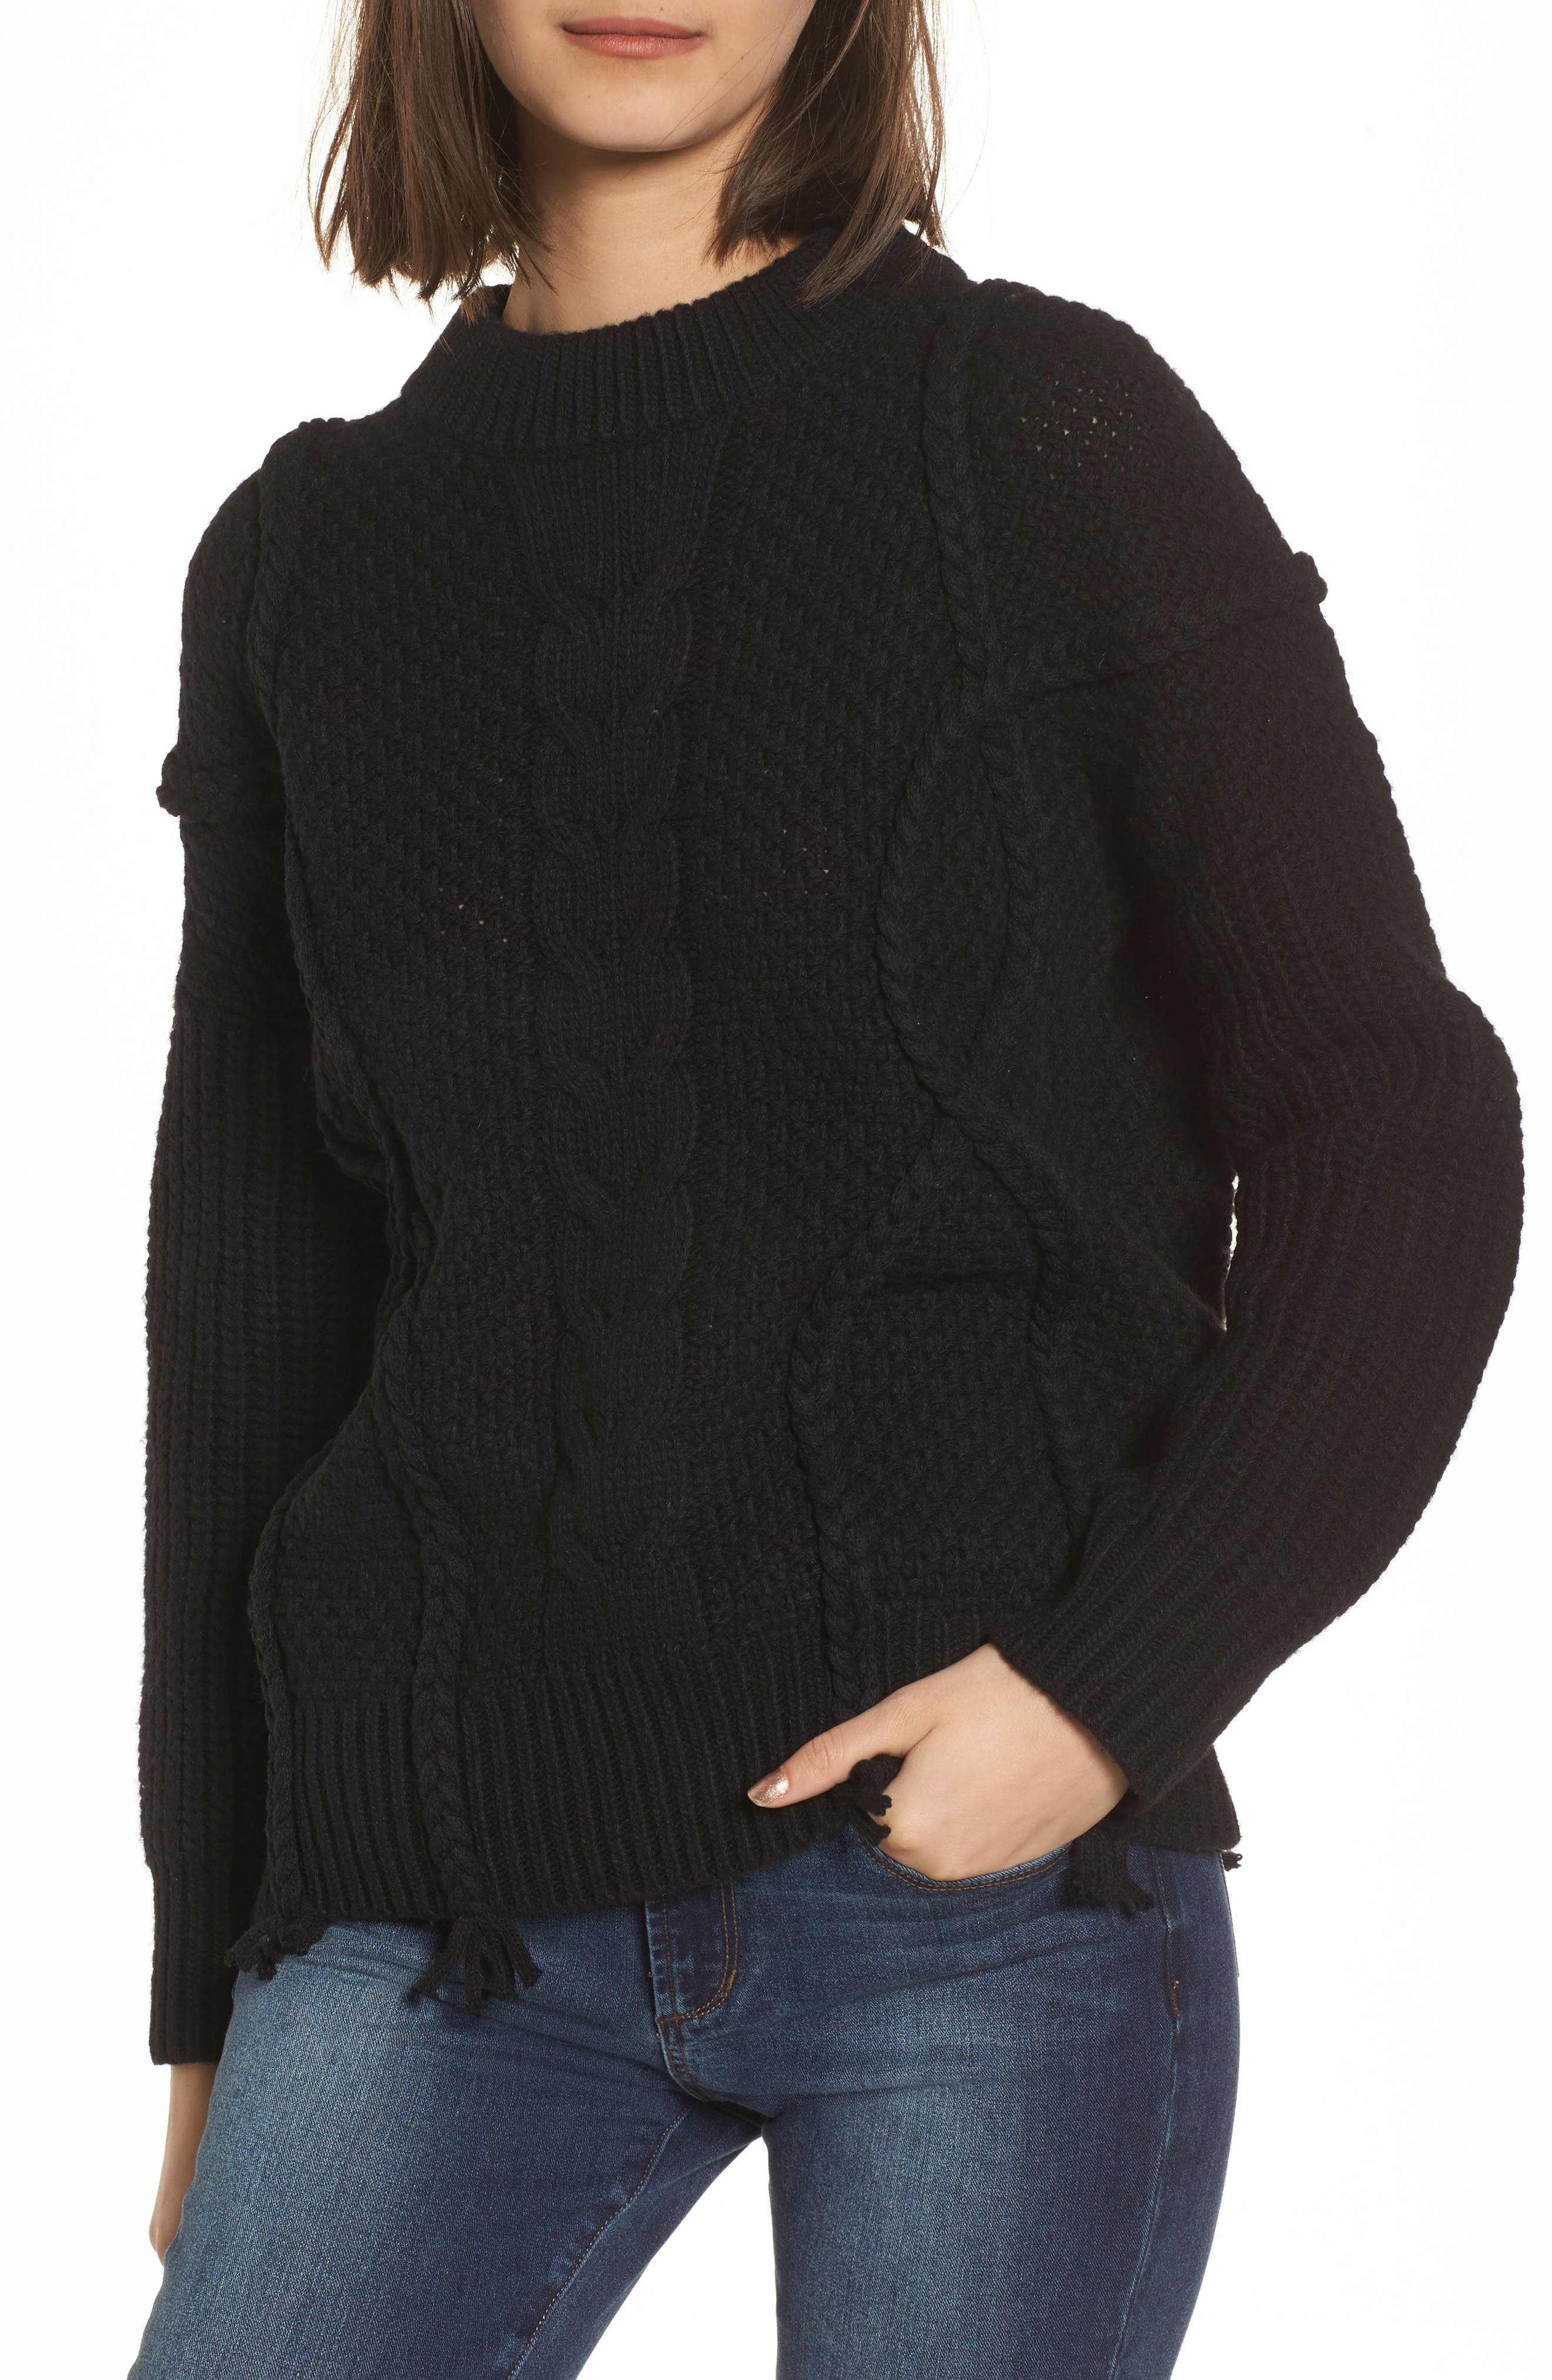 Plaited Cable Knit Sweater,                             Main thumbnail 1, color,                             001